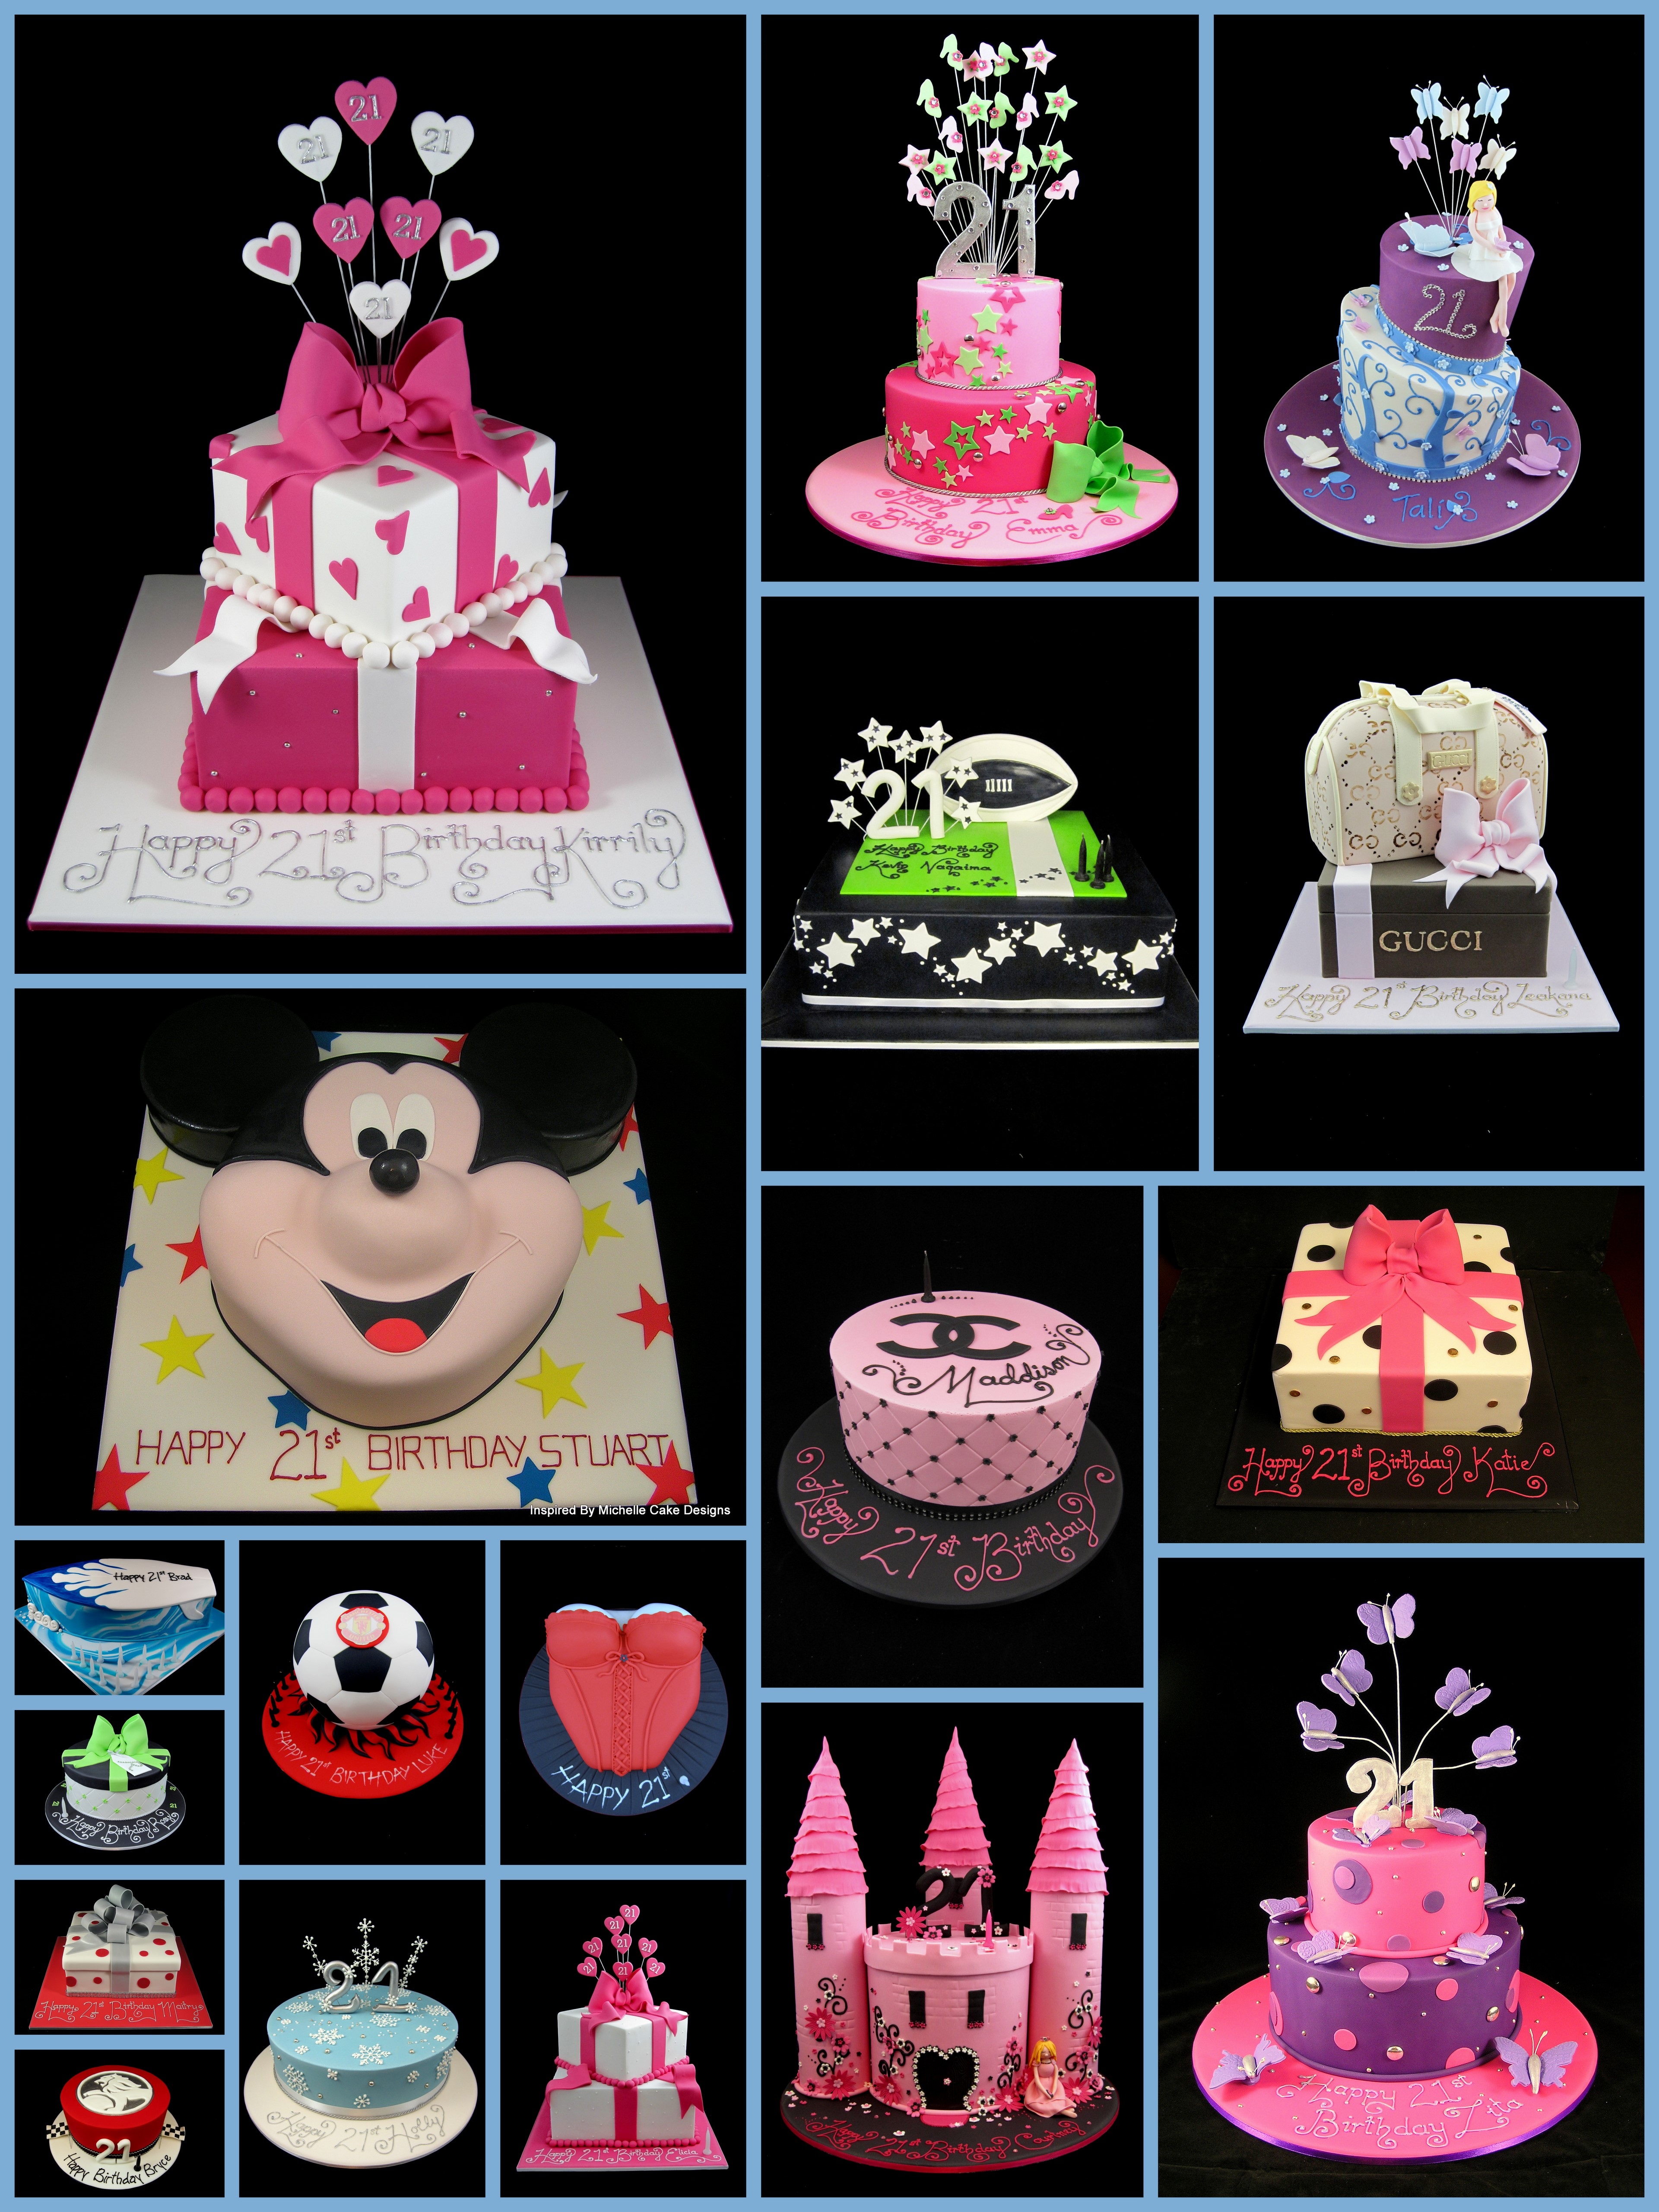 21st birthday cake ideas for boys and girls